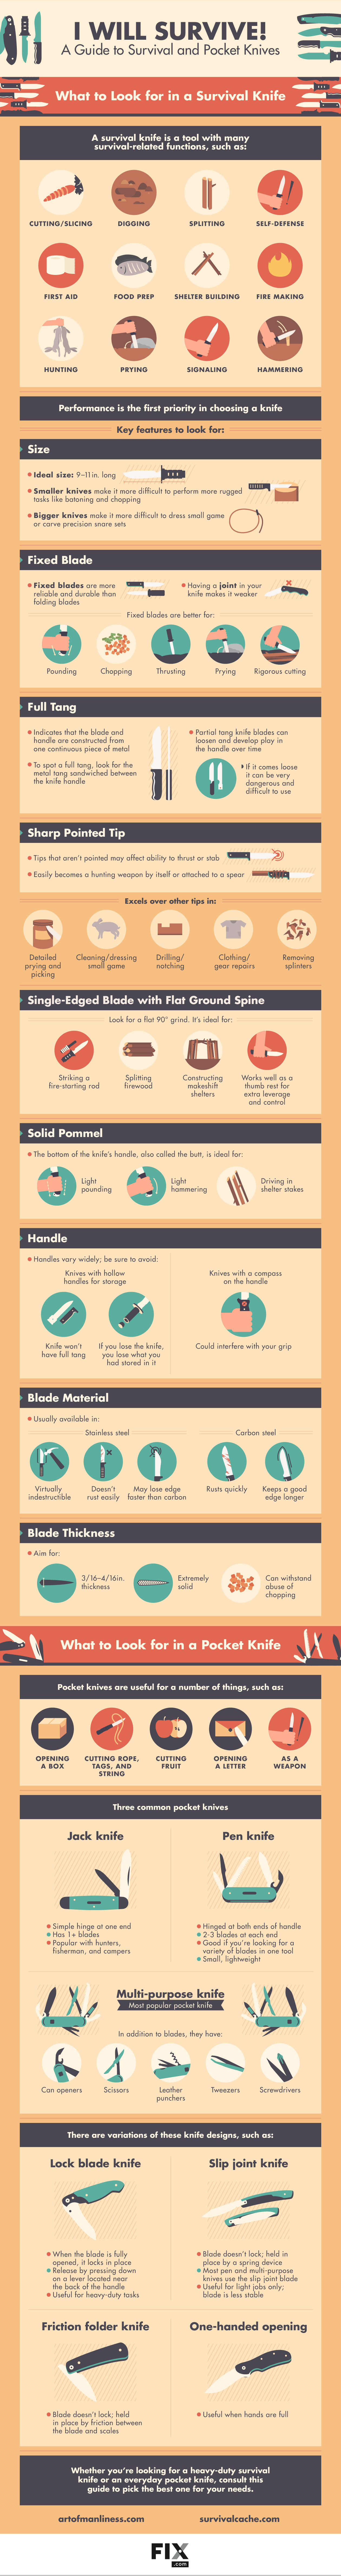 A guide to survival and pocket knives #infographic